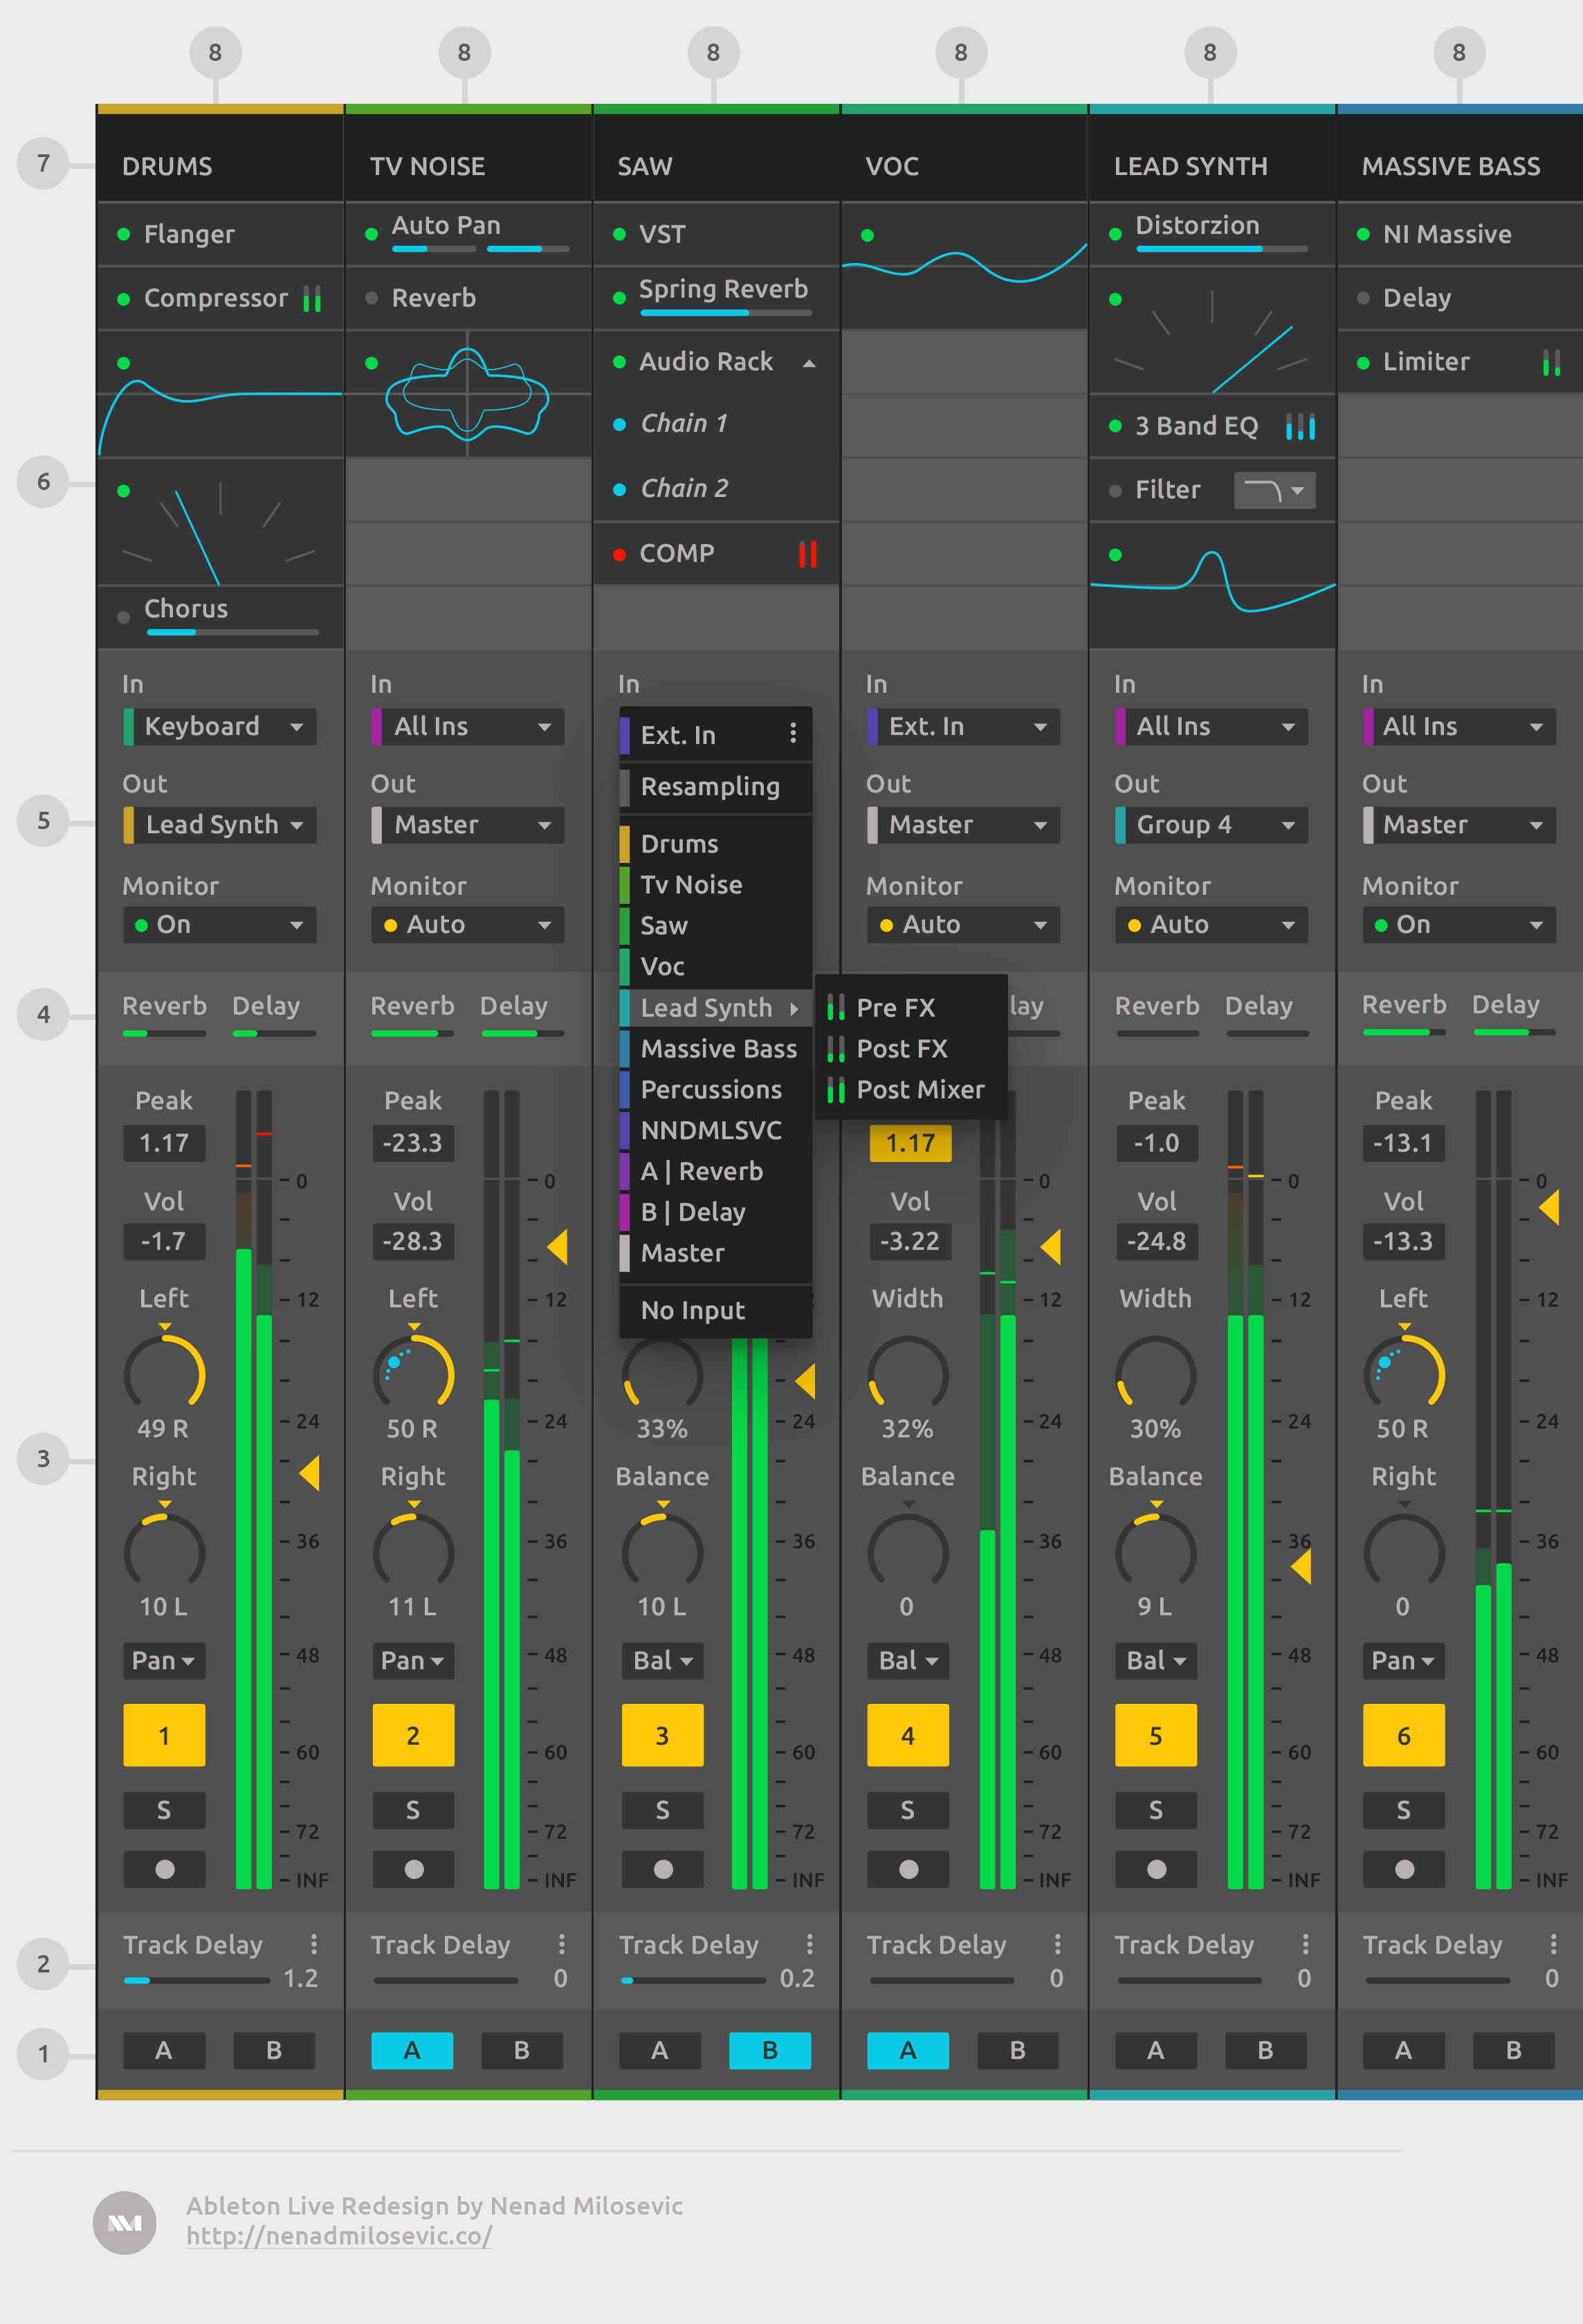 Expanded Mixer with Input (right-click) dropdown.